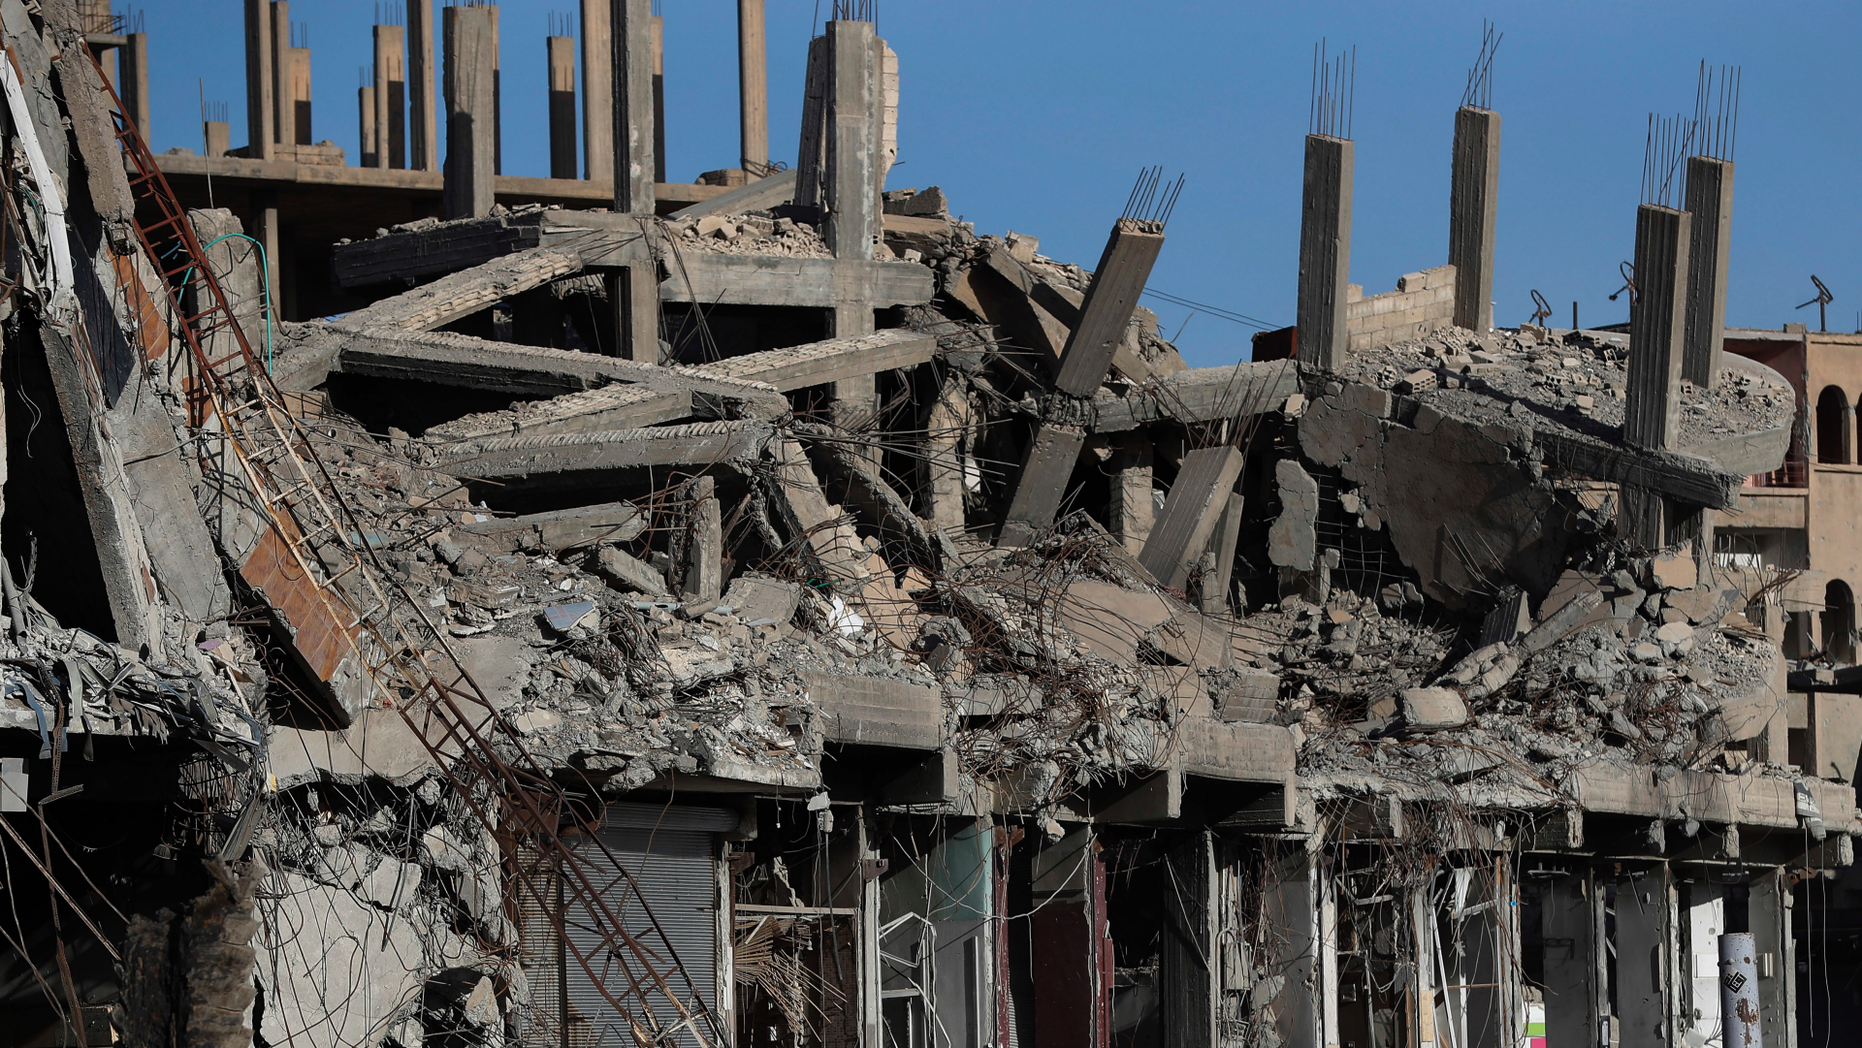 """FILE - In this April 5, 2018 file photo, destroyed buildings line a street damaged during fighting between U.S.-backed Syrian Democratic Forces fighters and Islamic State militants, in Raqqa, Syria. Amnesty International and Airwars, a London-based watchdog group, said Thursday, April 25, 2019, that the U.S.-led coalition killed more than 1,600 civilians in the northern Syria city of Raqqa during months of bombardment that liberated it from the Islamic State group. They said the toll came after the """"most comprehensive investigation into civilian deaths in a modern conflict."""" (AP Photo/Hussein Malla, File)"""